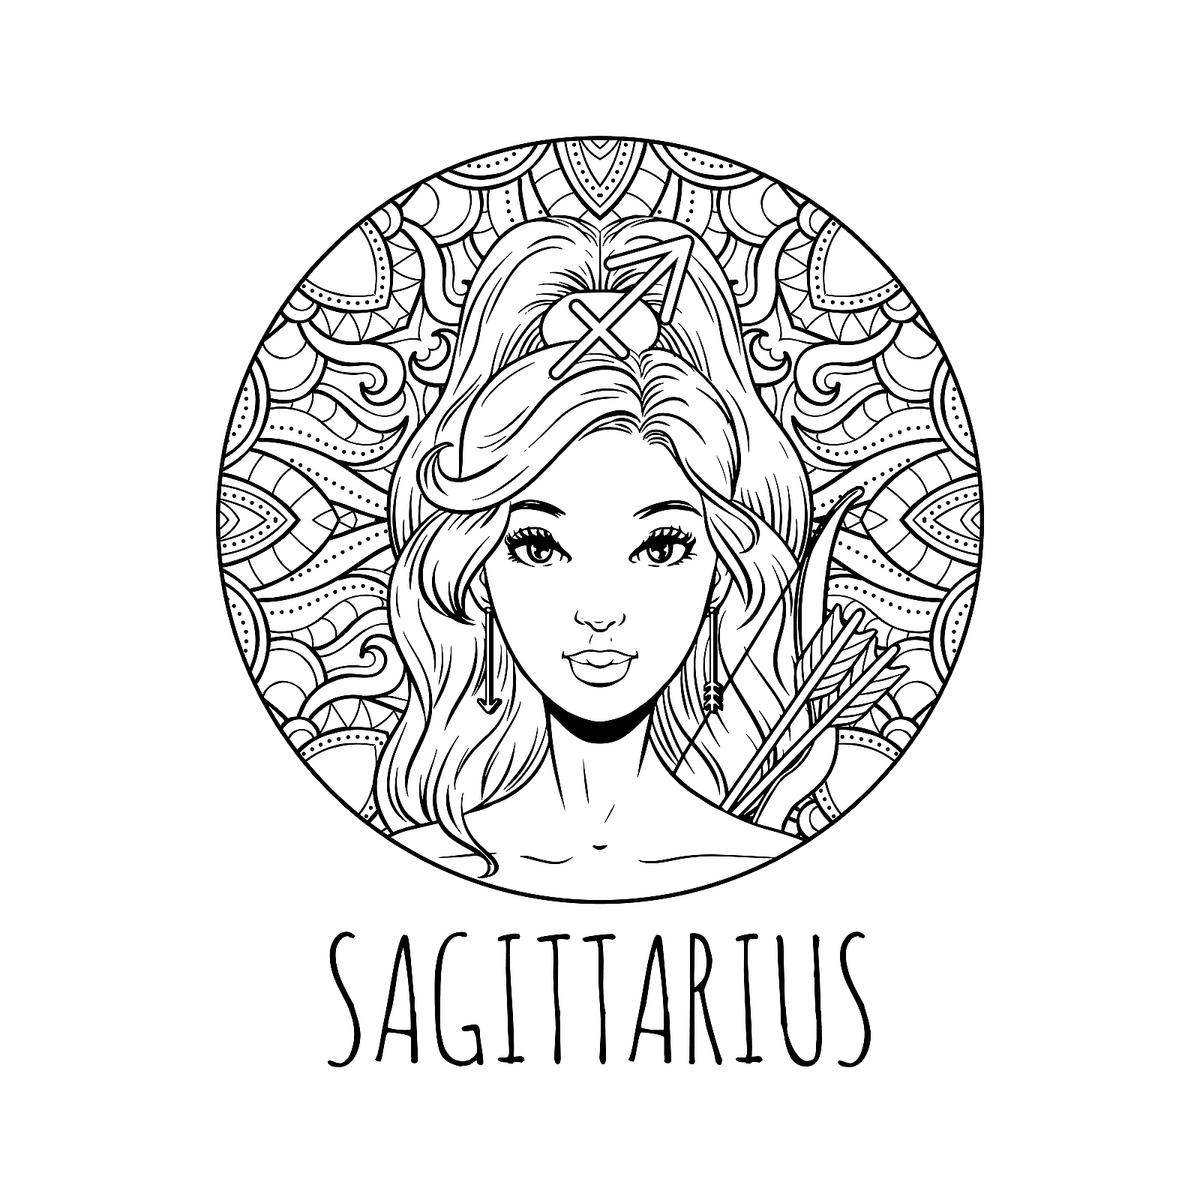 zodiac signs coloring pages zodiac sign coloring pages 12 printable zodiac coloring pages zodiac coloring signs